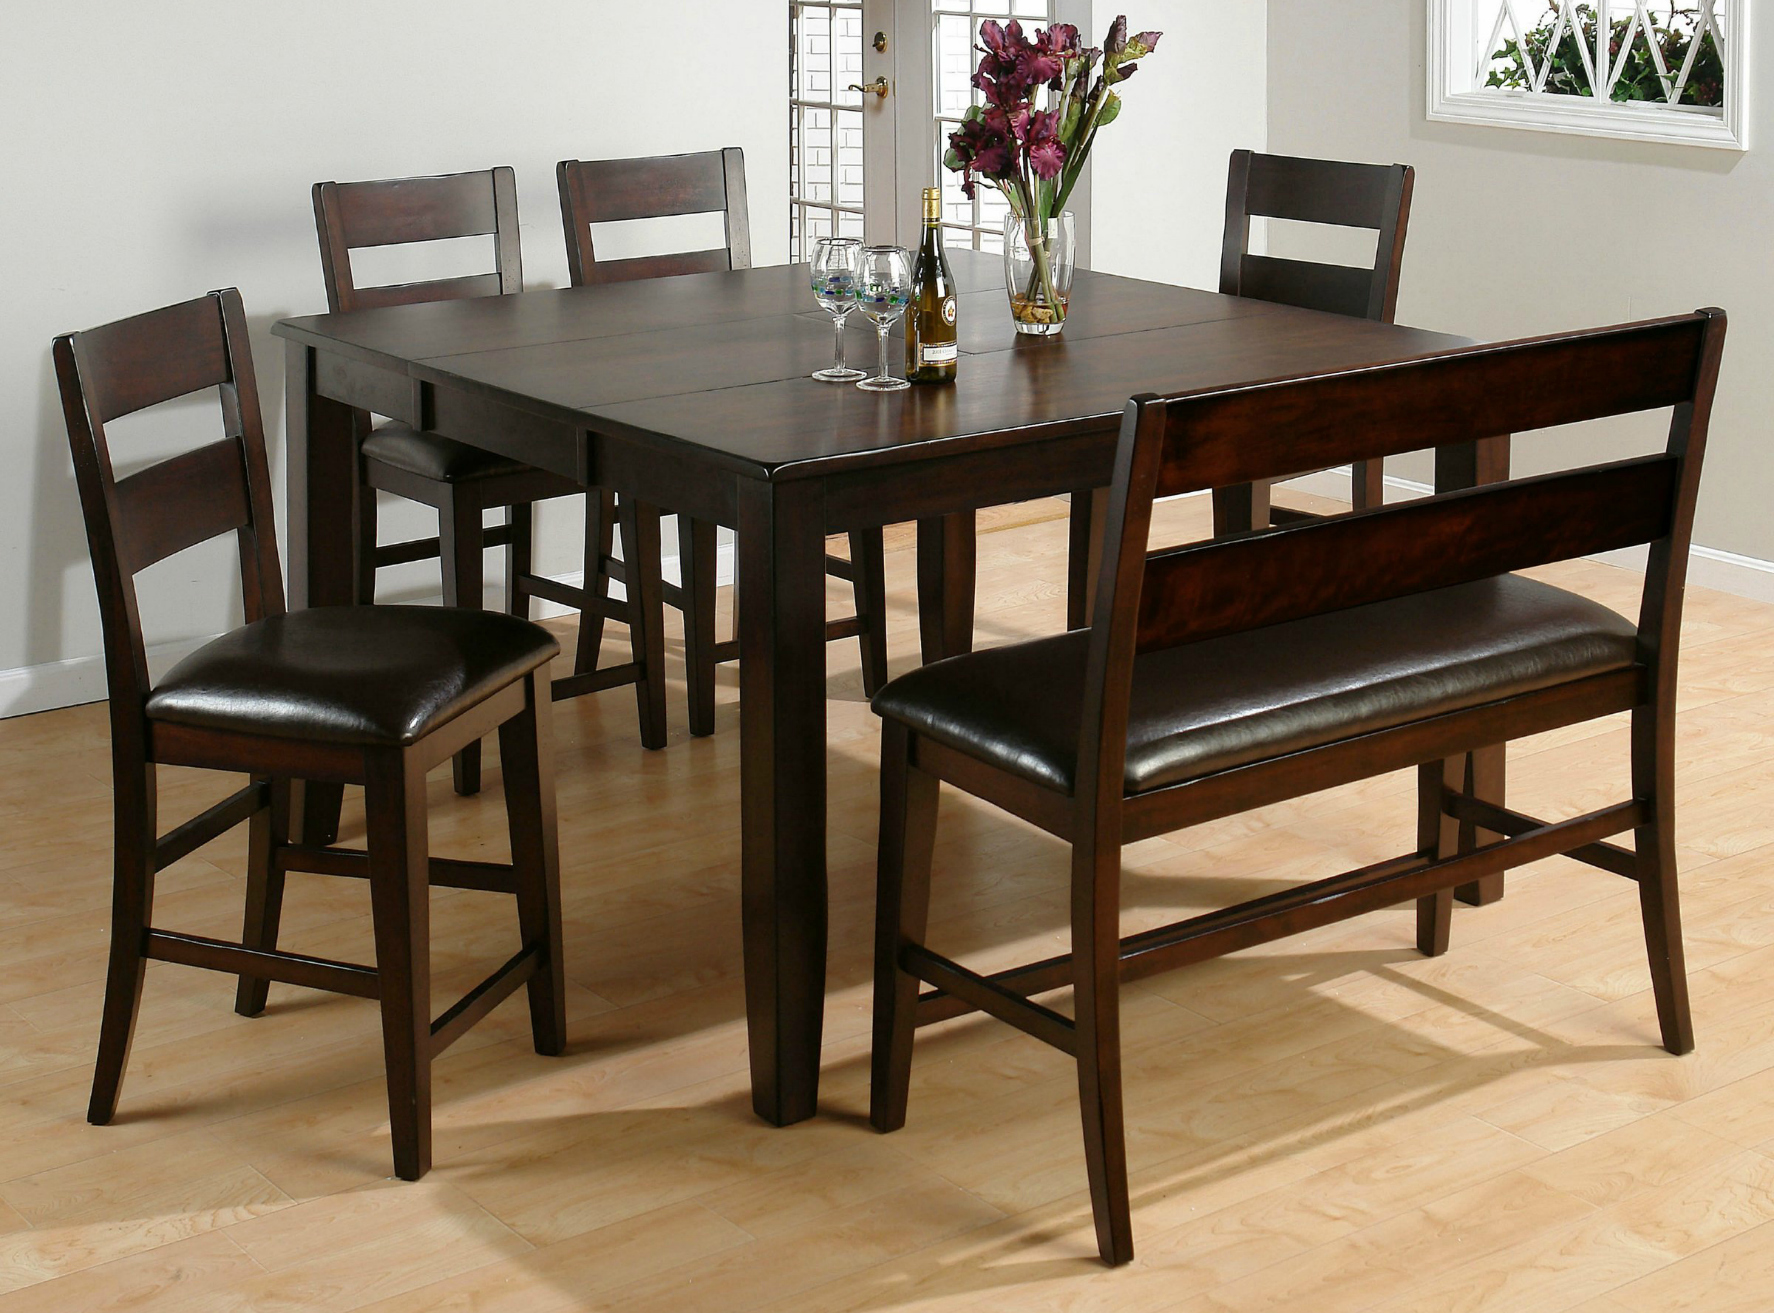 Bench seat dining set images how a kitchen table with bench seating - Dark Wooden Dinette Sets With Bench And Four Chairs Large Size Of Kitchen Table